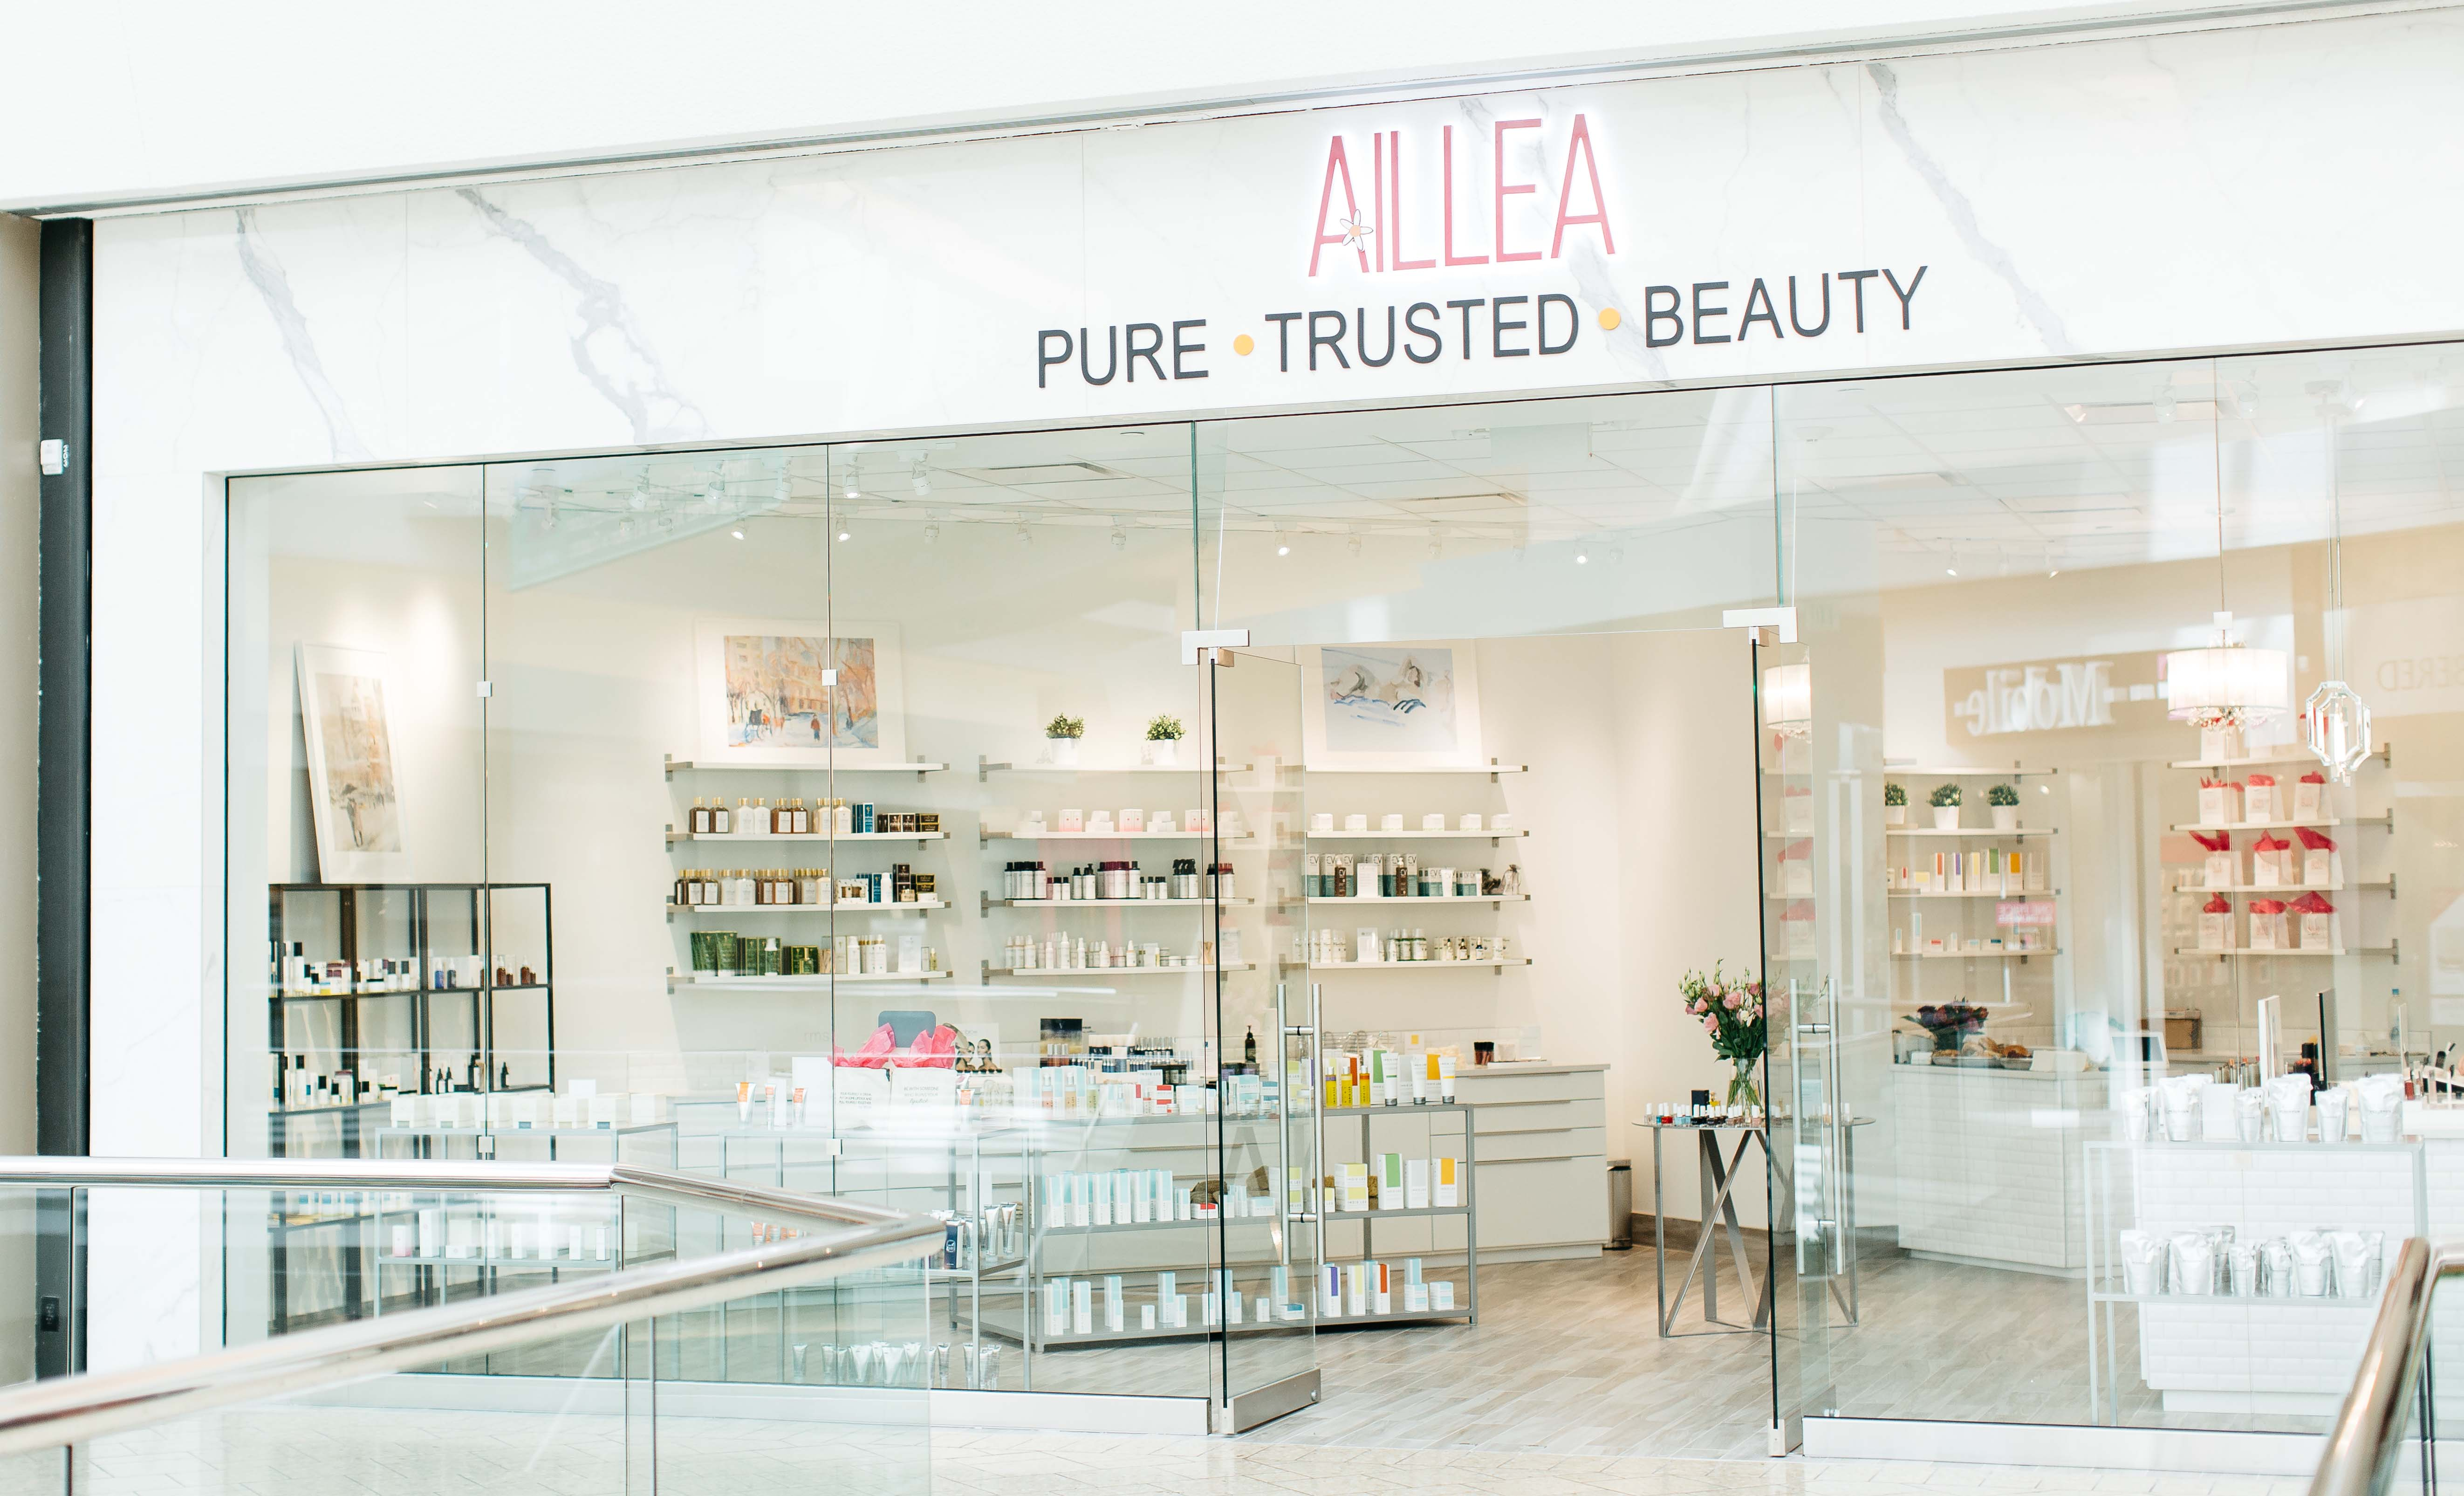 AILLEA Store Front in Cherry Creek - All Images by McKenzie Coyle